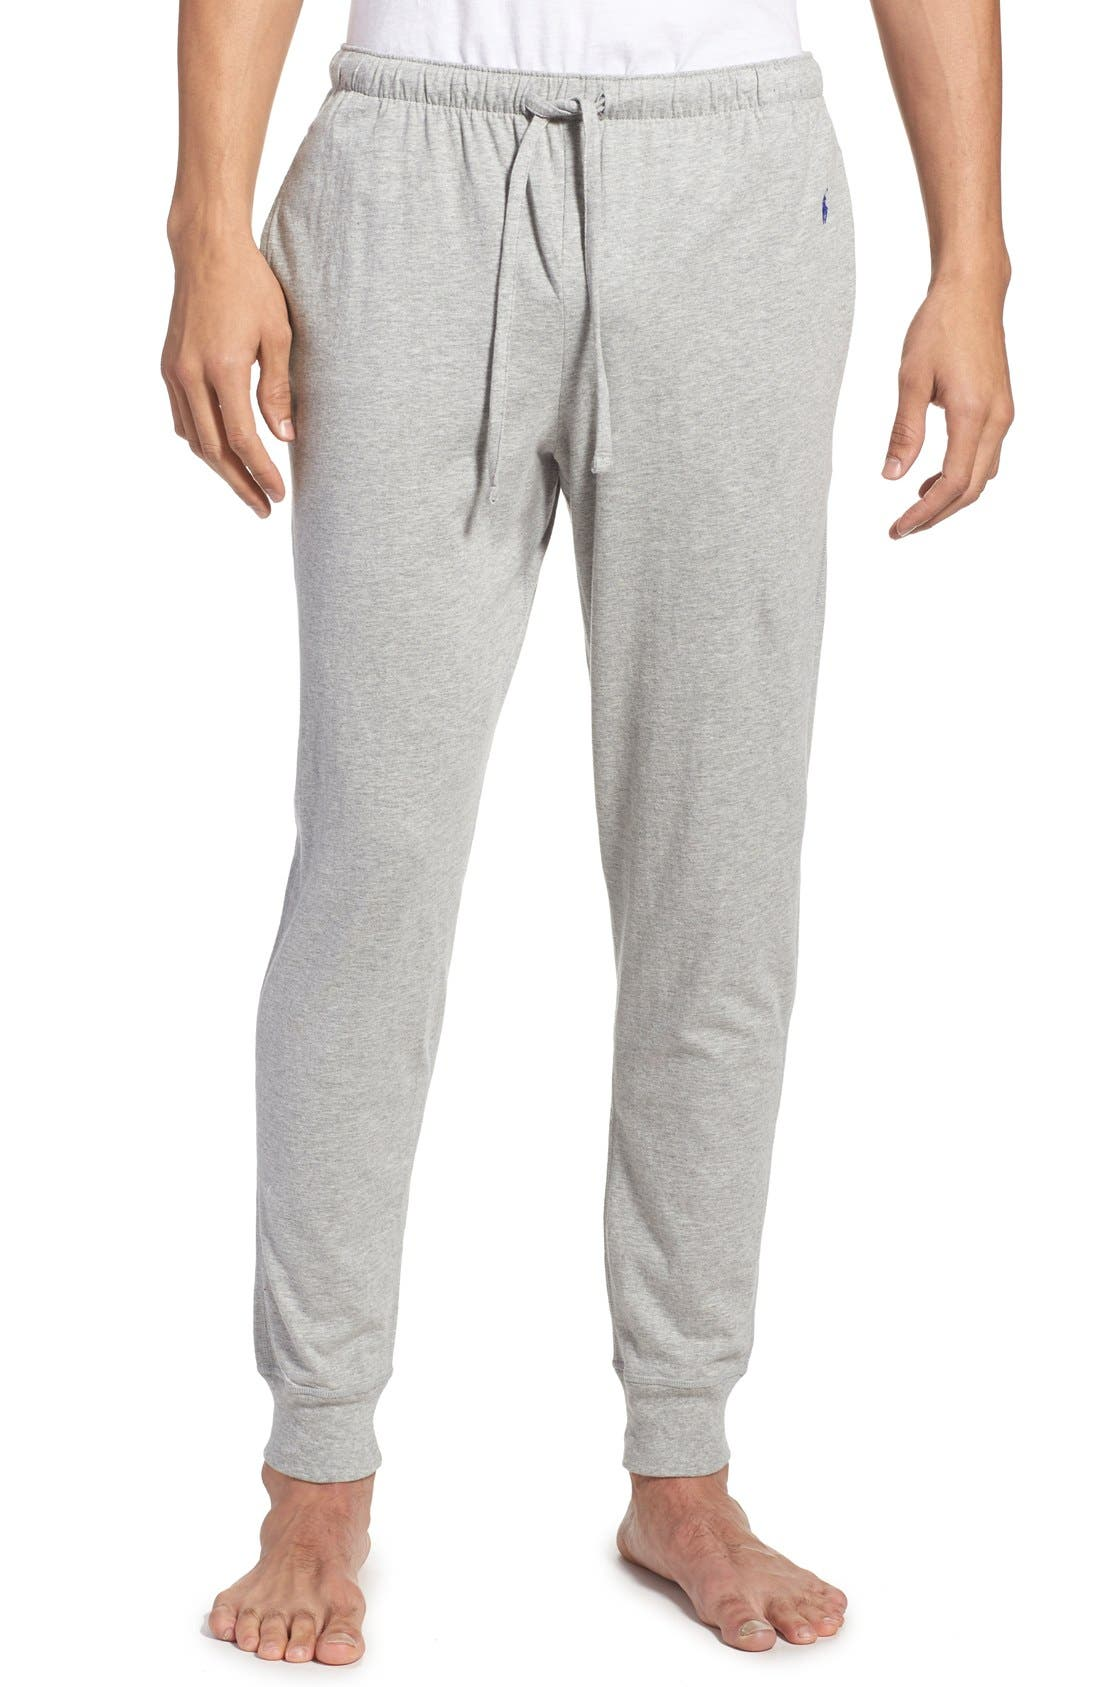 POLO RALPH LAUREN, Relaxed Fit Jogger Pants, Main thumbnail 1, color, ANDOVER HEATHER